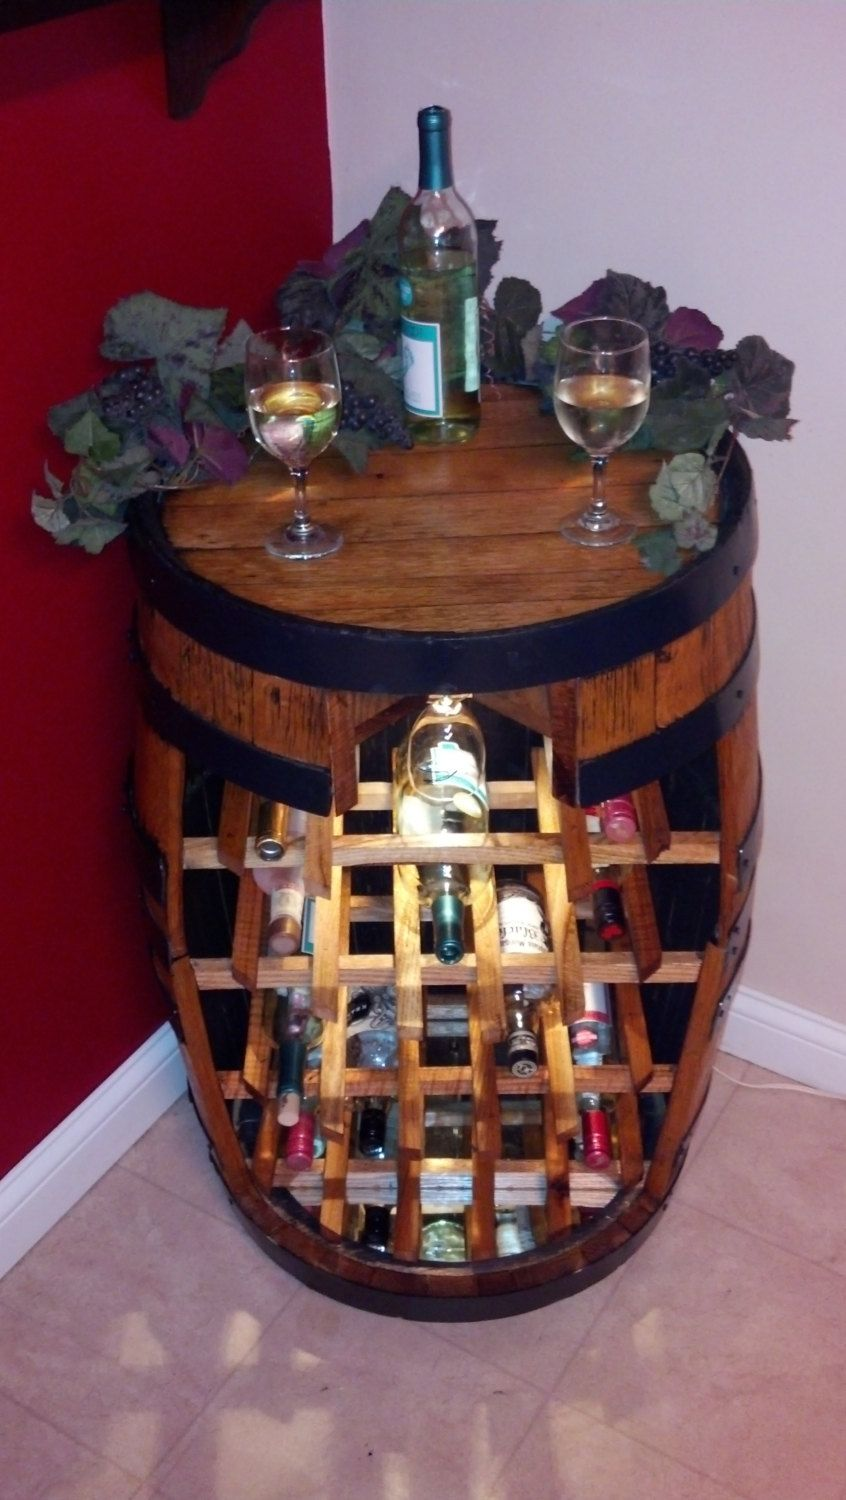 wine barrel wine rack furniture. Exellent Rack Super Cute Wine Rack Idea Wine Barrel Rack 50000 Via Etsy With Barrel Rack Furniture